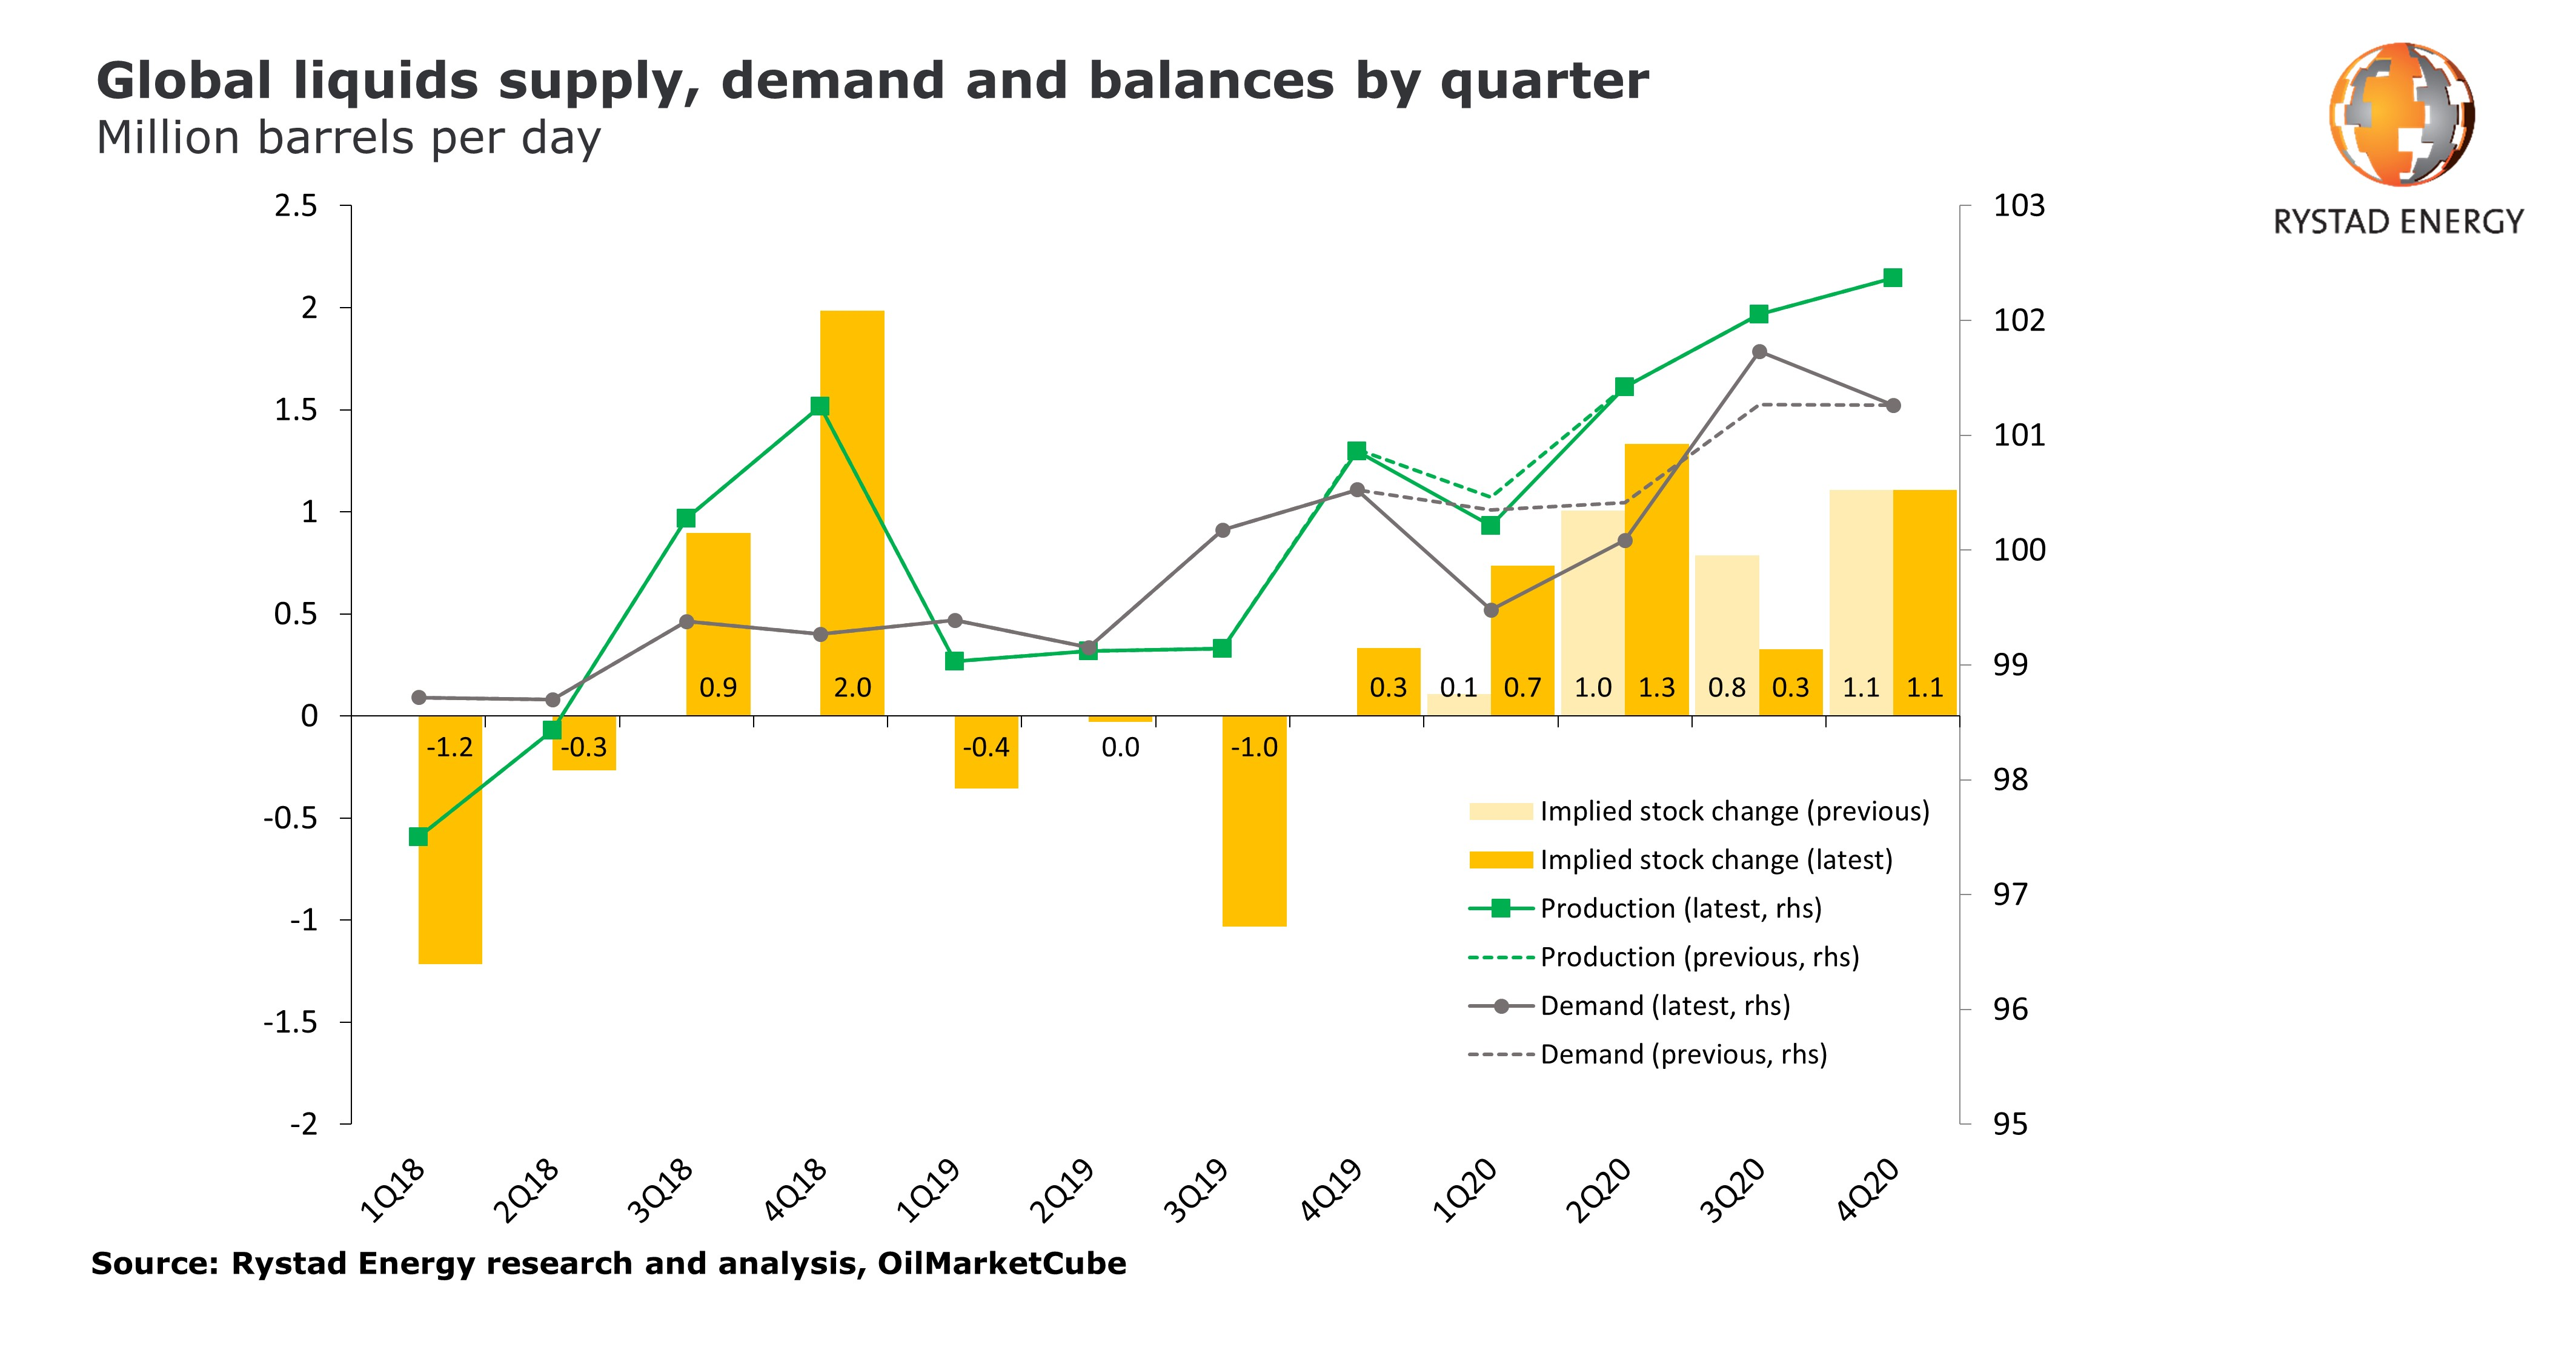 Graph showing global liquids supply, demand and balances by quarter in million barrels per day.jpg